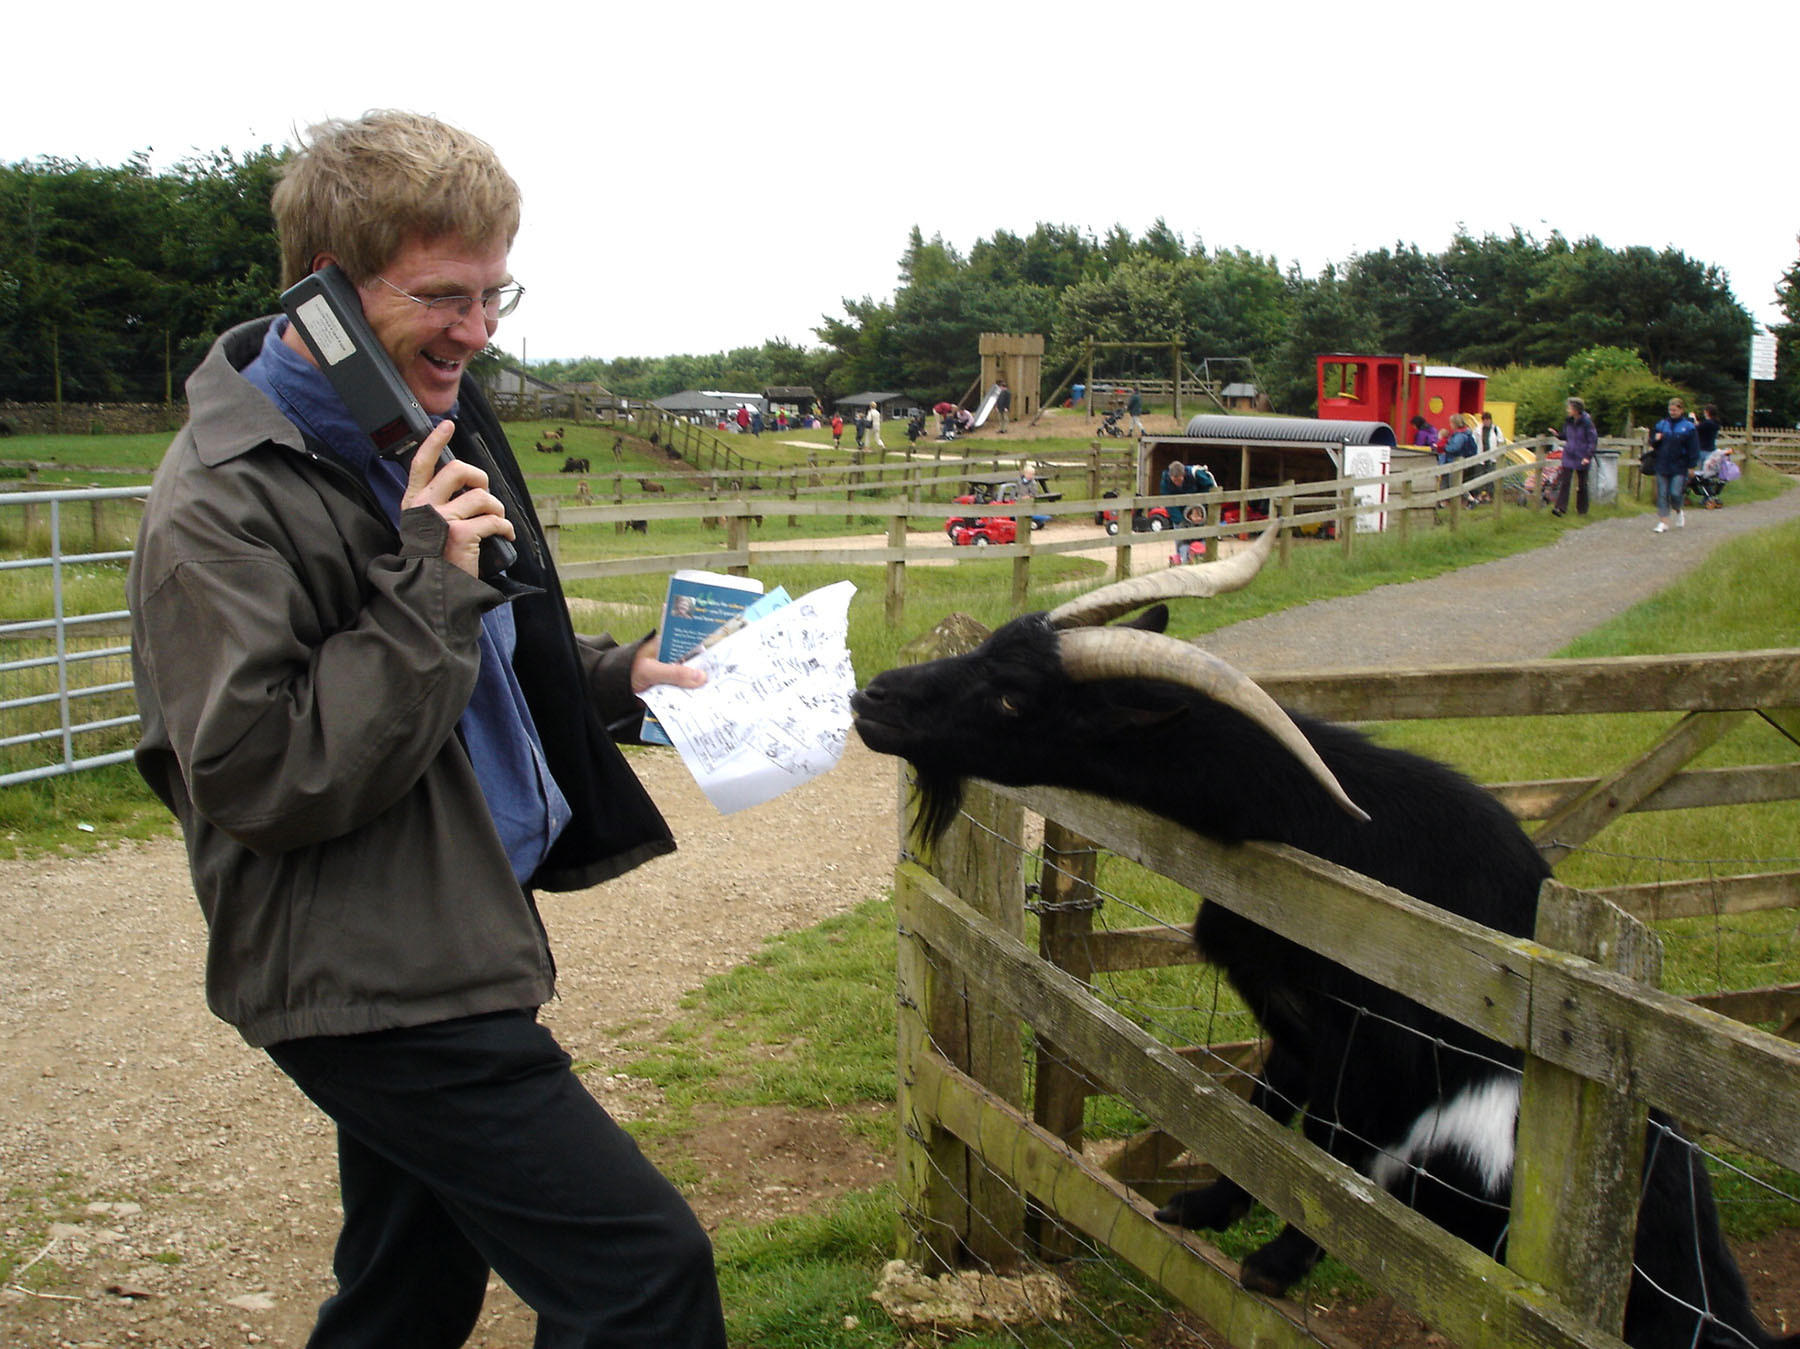 At the Cotswold Farm Park, visitors meet endangered breeds of native British animals and partake in farm demonstrations and tractor rides.